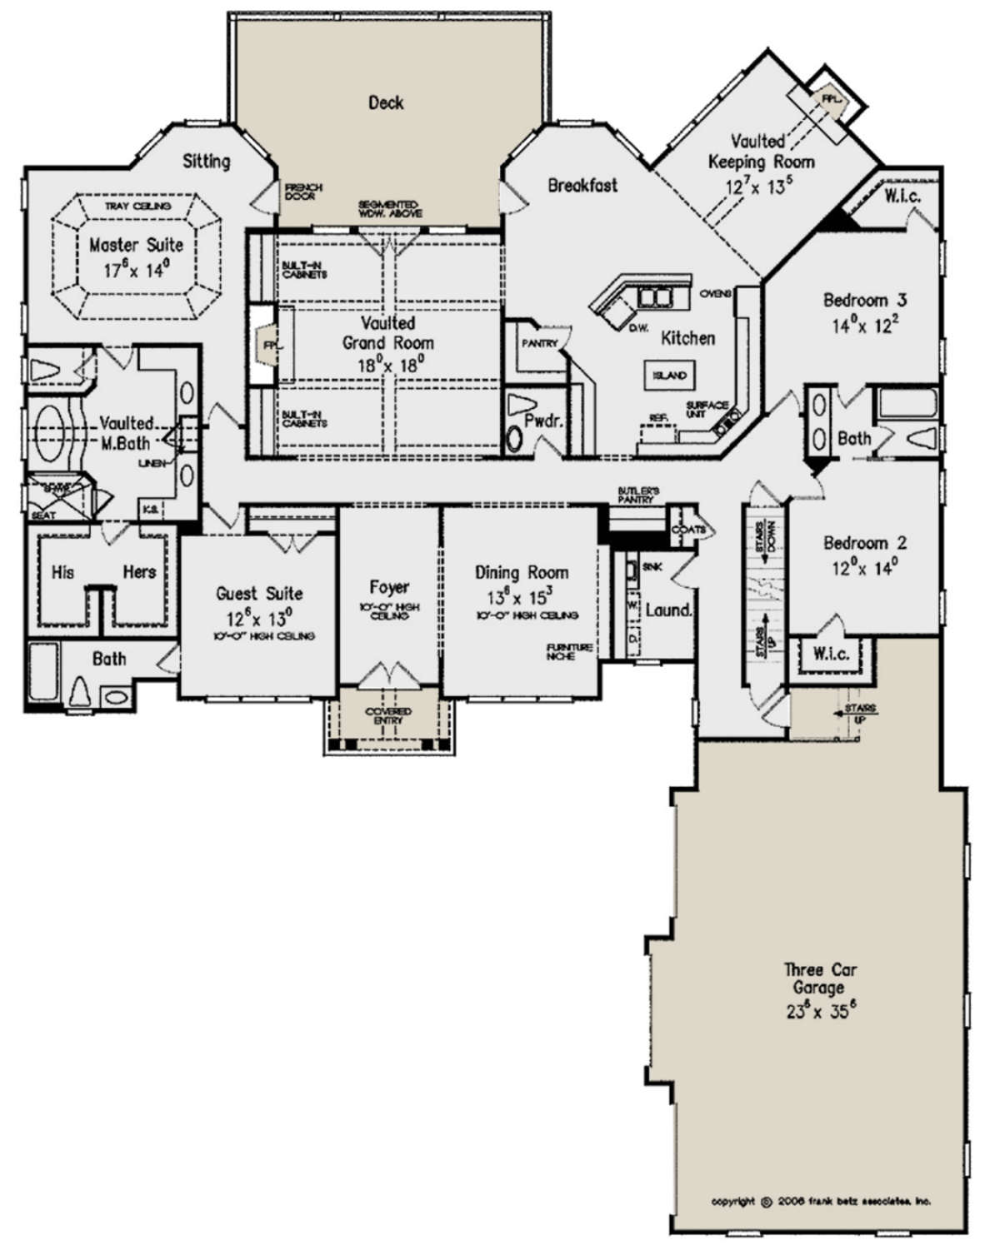 House Plan 8594 00258 Traditional Plan 3 206 Square Feet 4 5 Bedrooms 3 5 Bathrooms Floor Plans Craftsman House Plans How To Plan